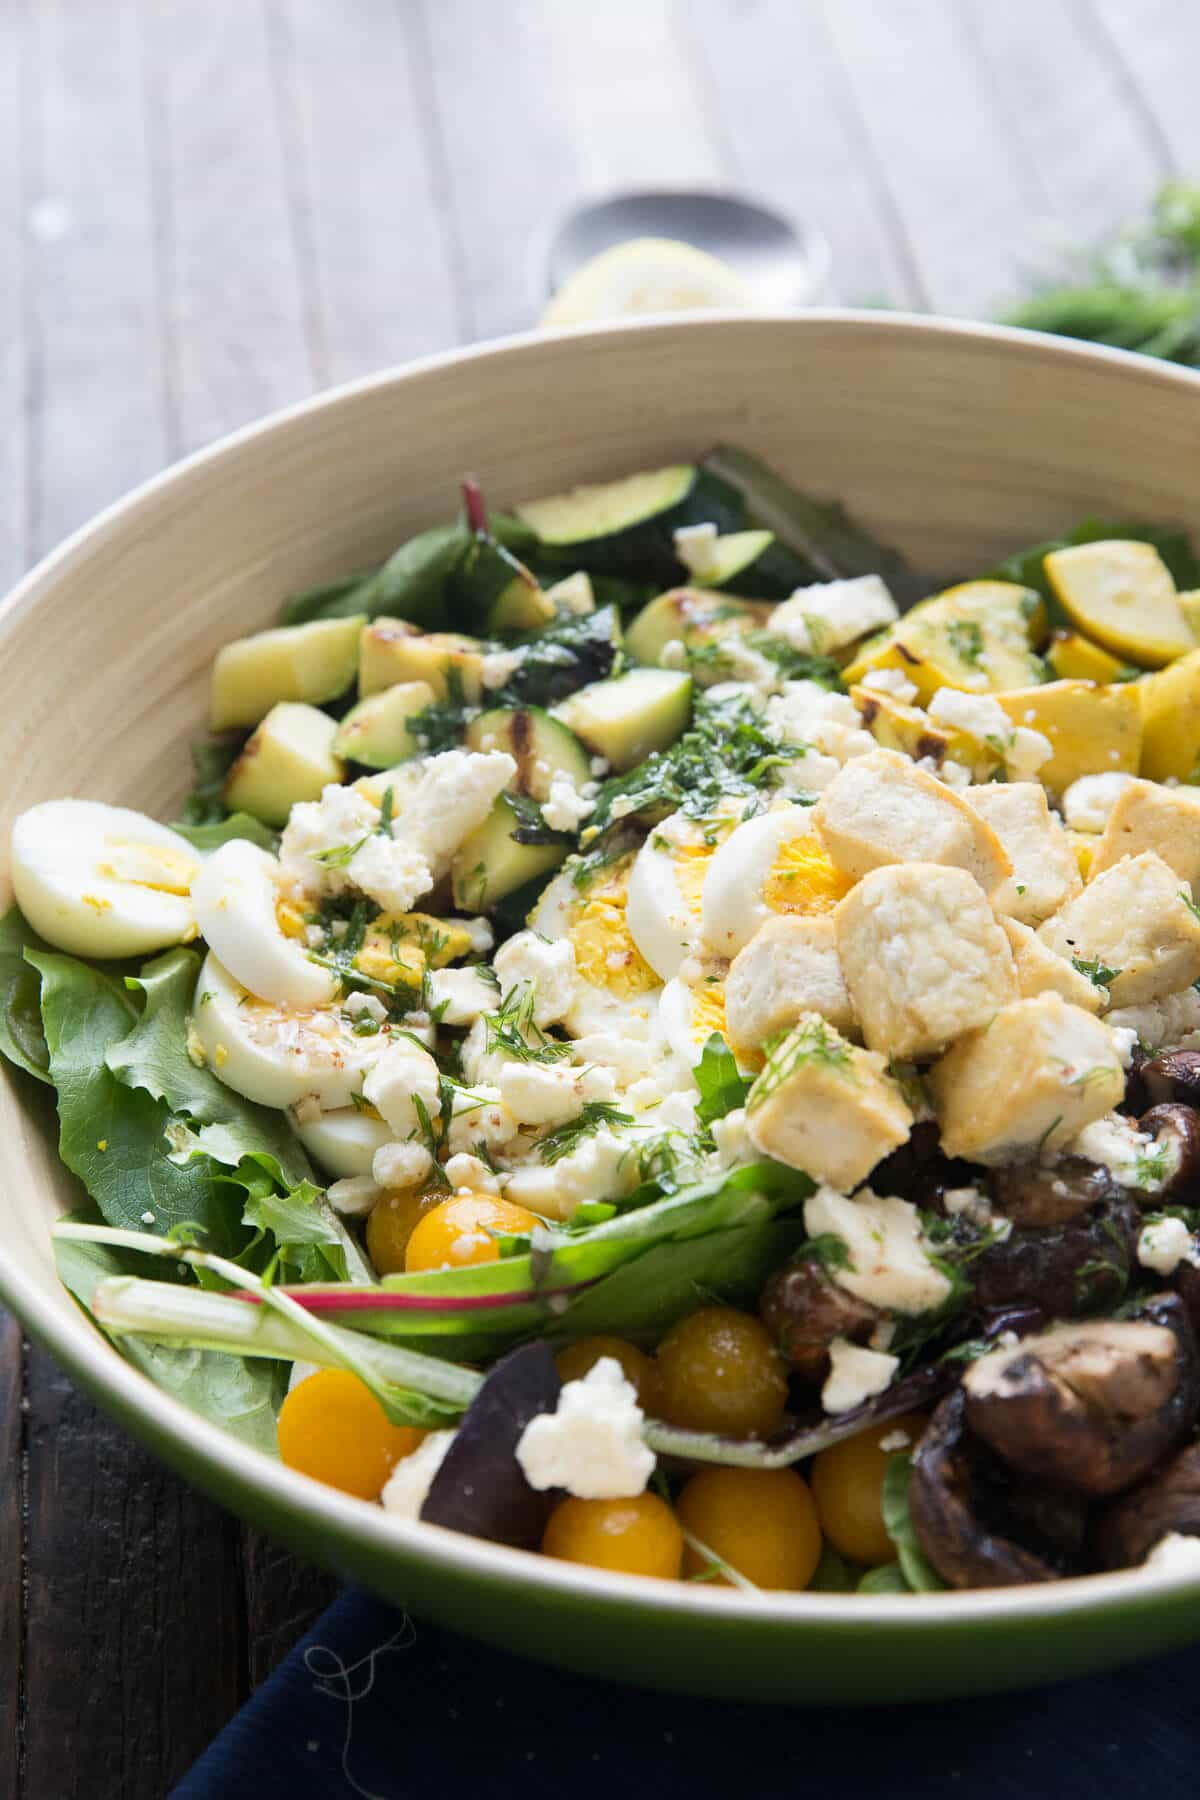 This grilled veggie cobb salad cannot be beat when it comes to healthy flavors! Plus it is so easy!